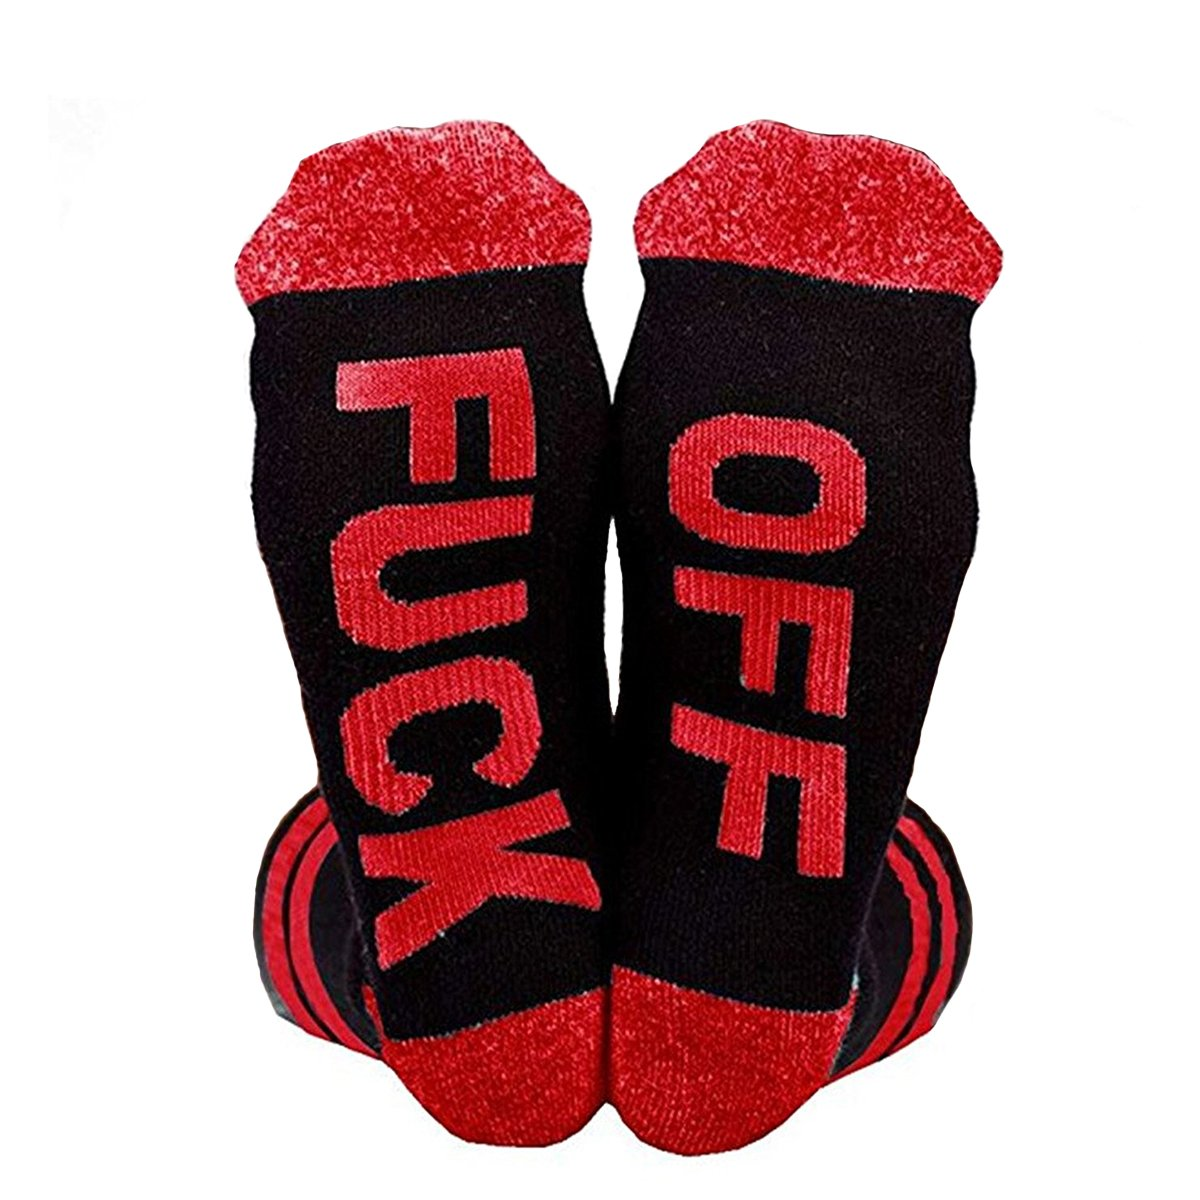 Himozoo Unisex Cotton Funny FUCK OFF Ribbed Knit Half Crew Socks